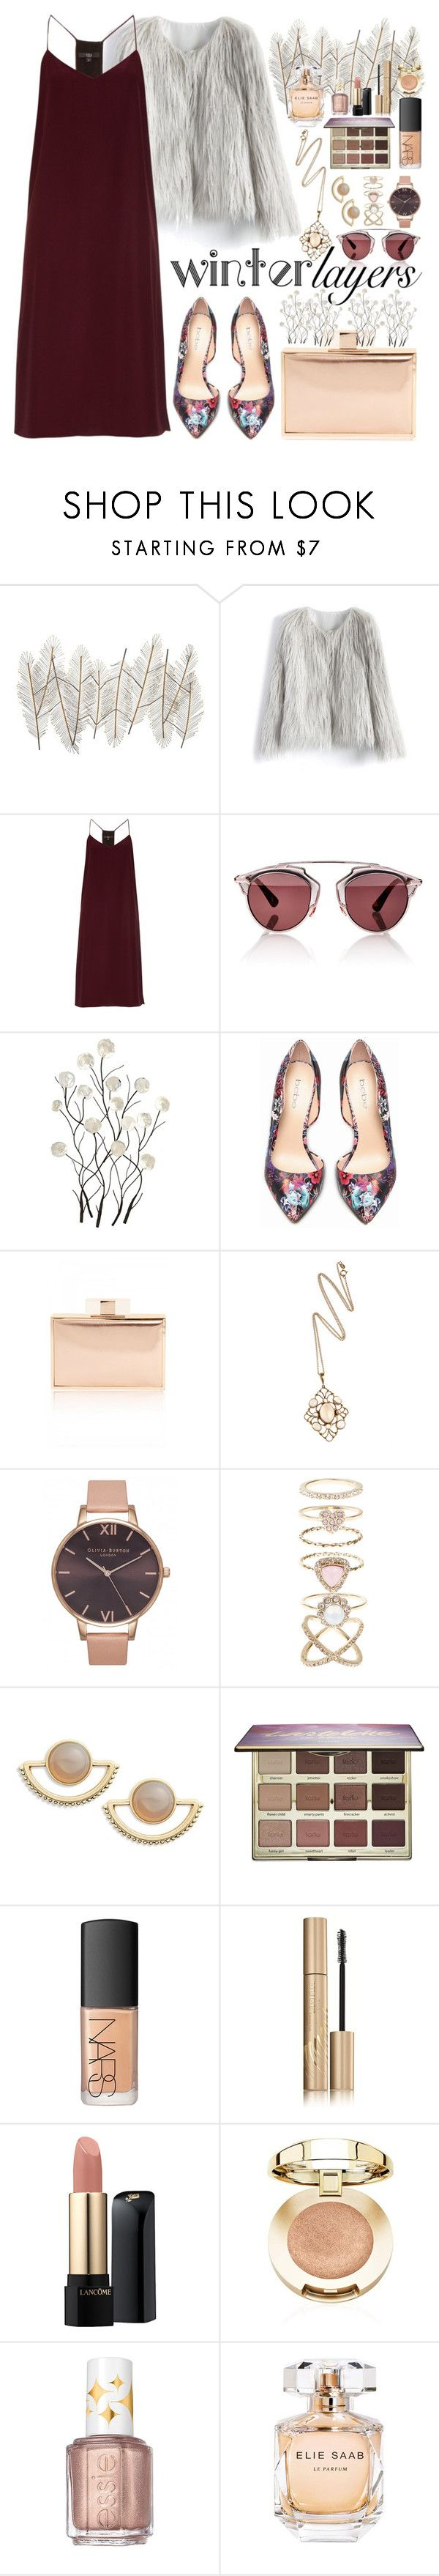 """Winter Layers: Slip Dress"" by saramsilva ❤ liked on Polyvore featuring Universal Lighting and Decor, Chicwish, TIBI, Christian Dior, Bebe, Olivia Burton, Accessorize, T+C by Theodora & Callum, tarte and NARS Cosmetics"